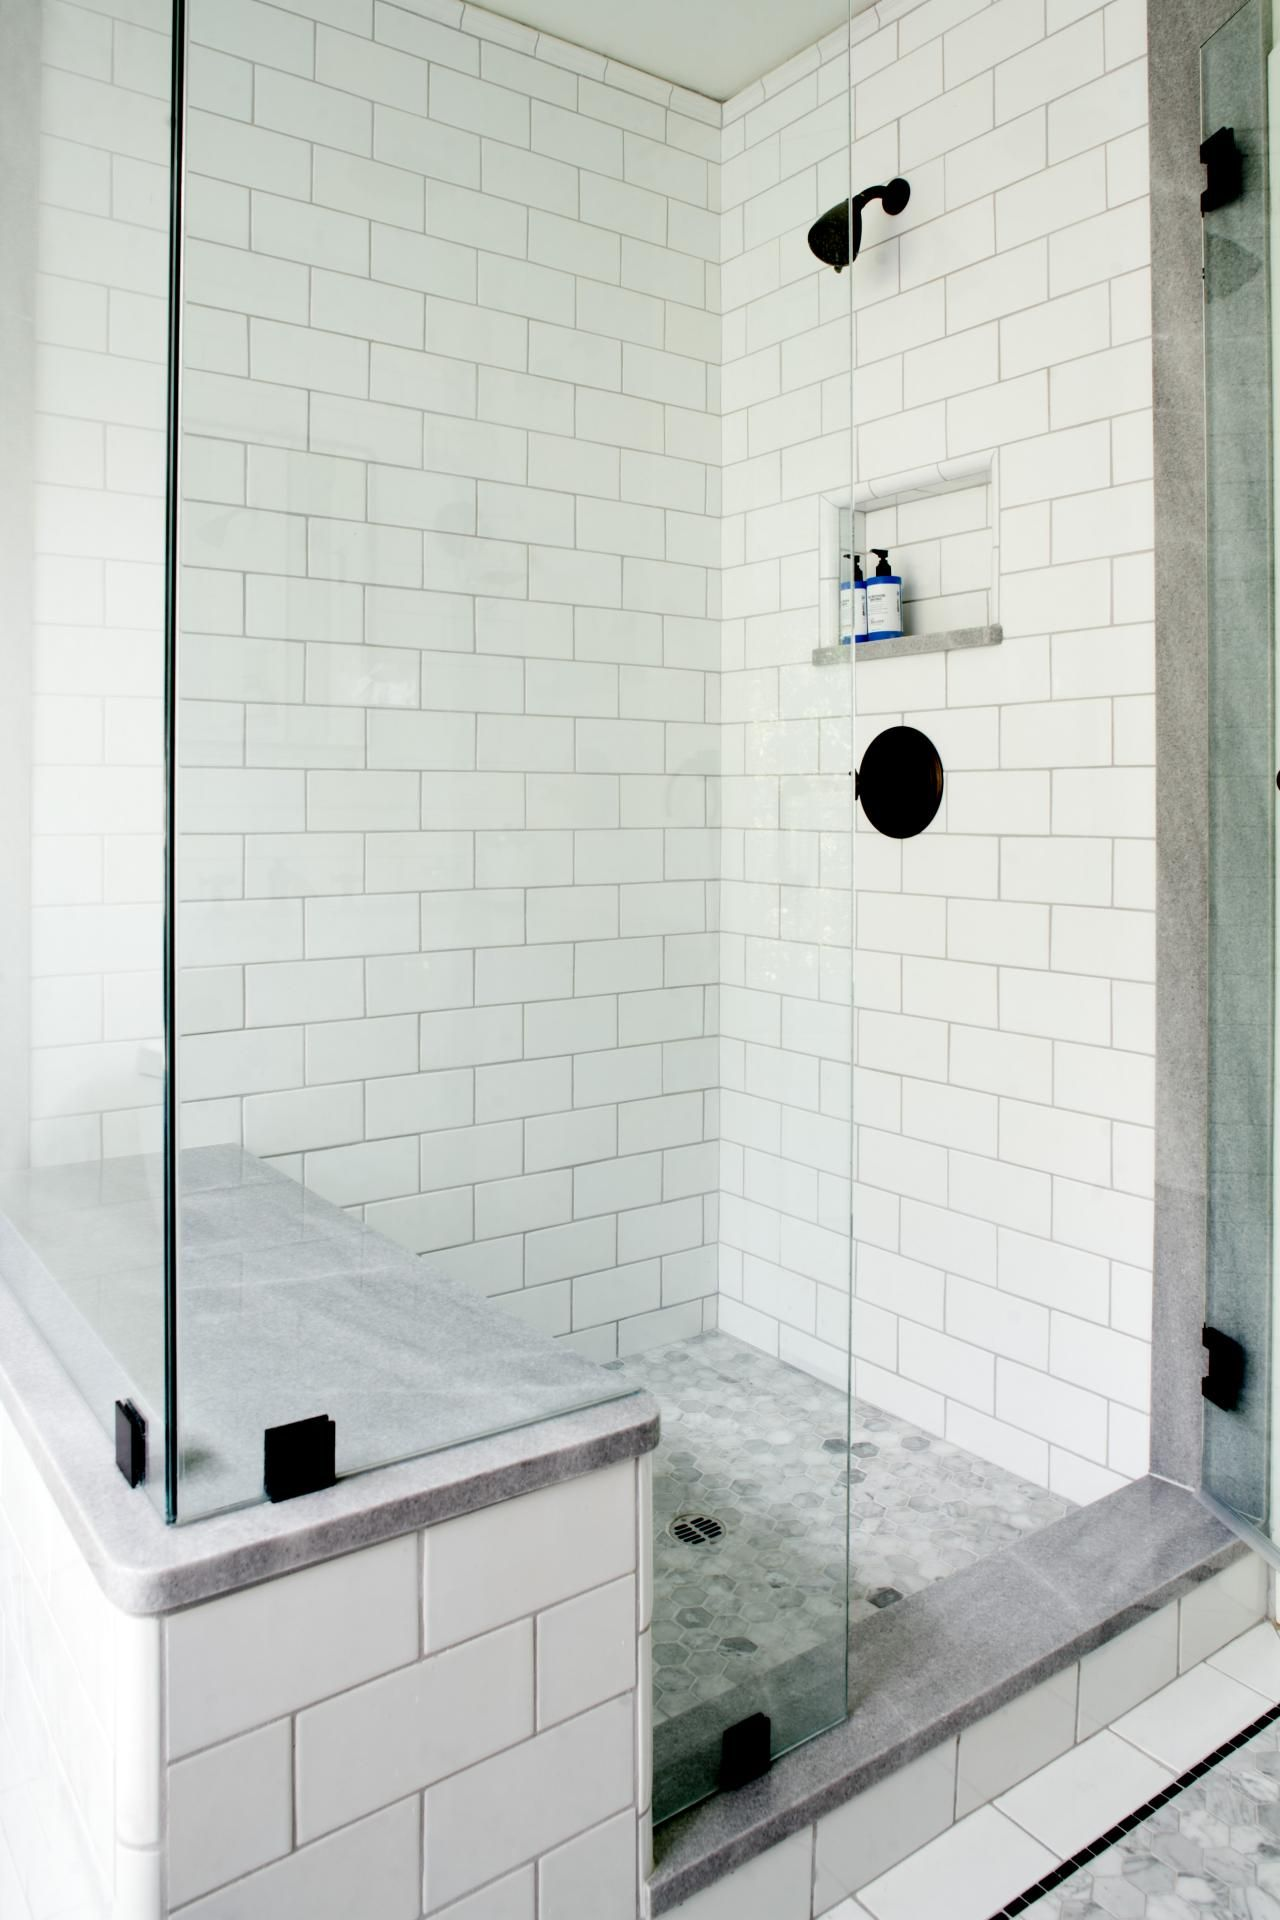 White tile with grey grout tips on how to budget better for  major home remodeling project decorating and design blog hgtv also plan reno without going over someday